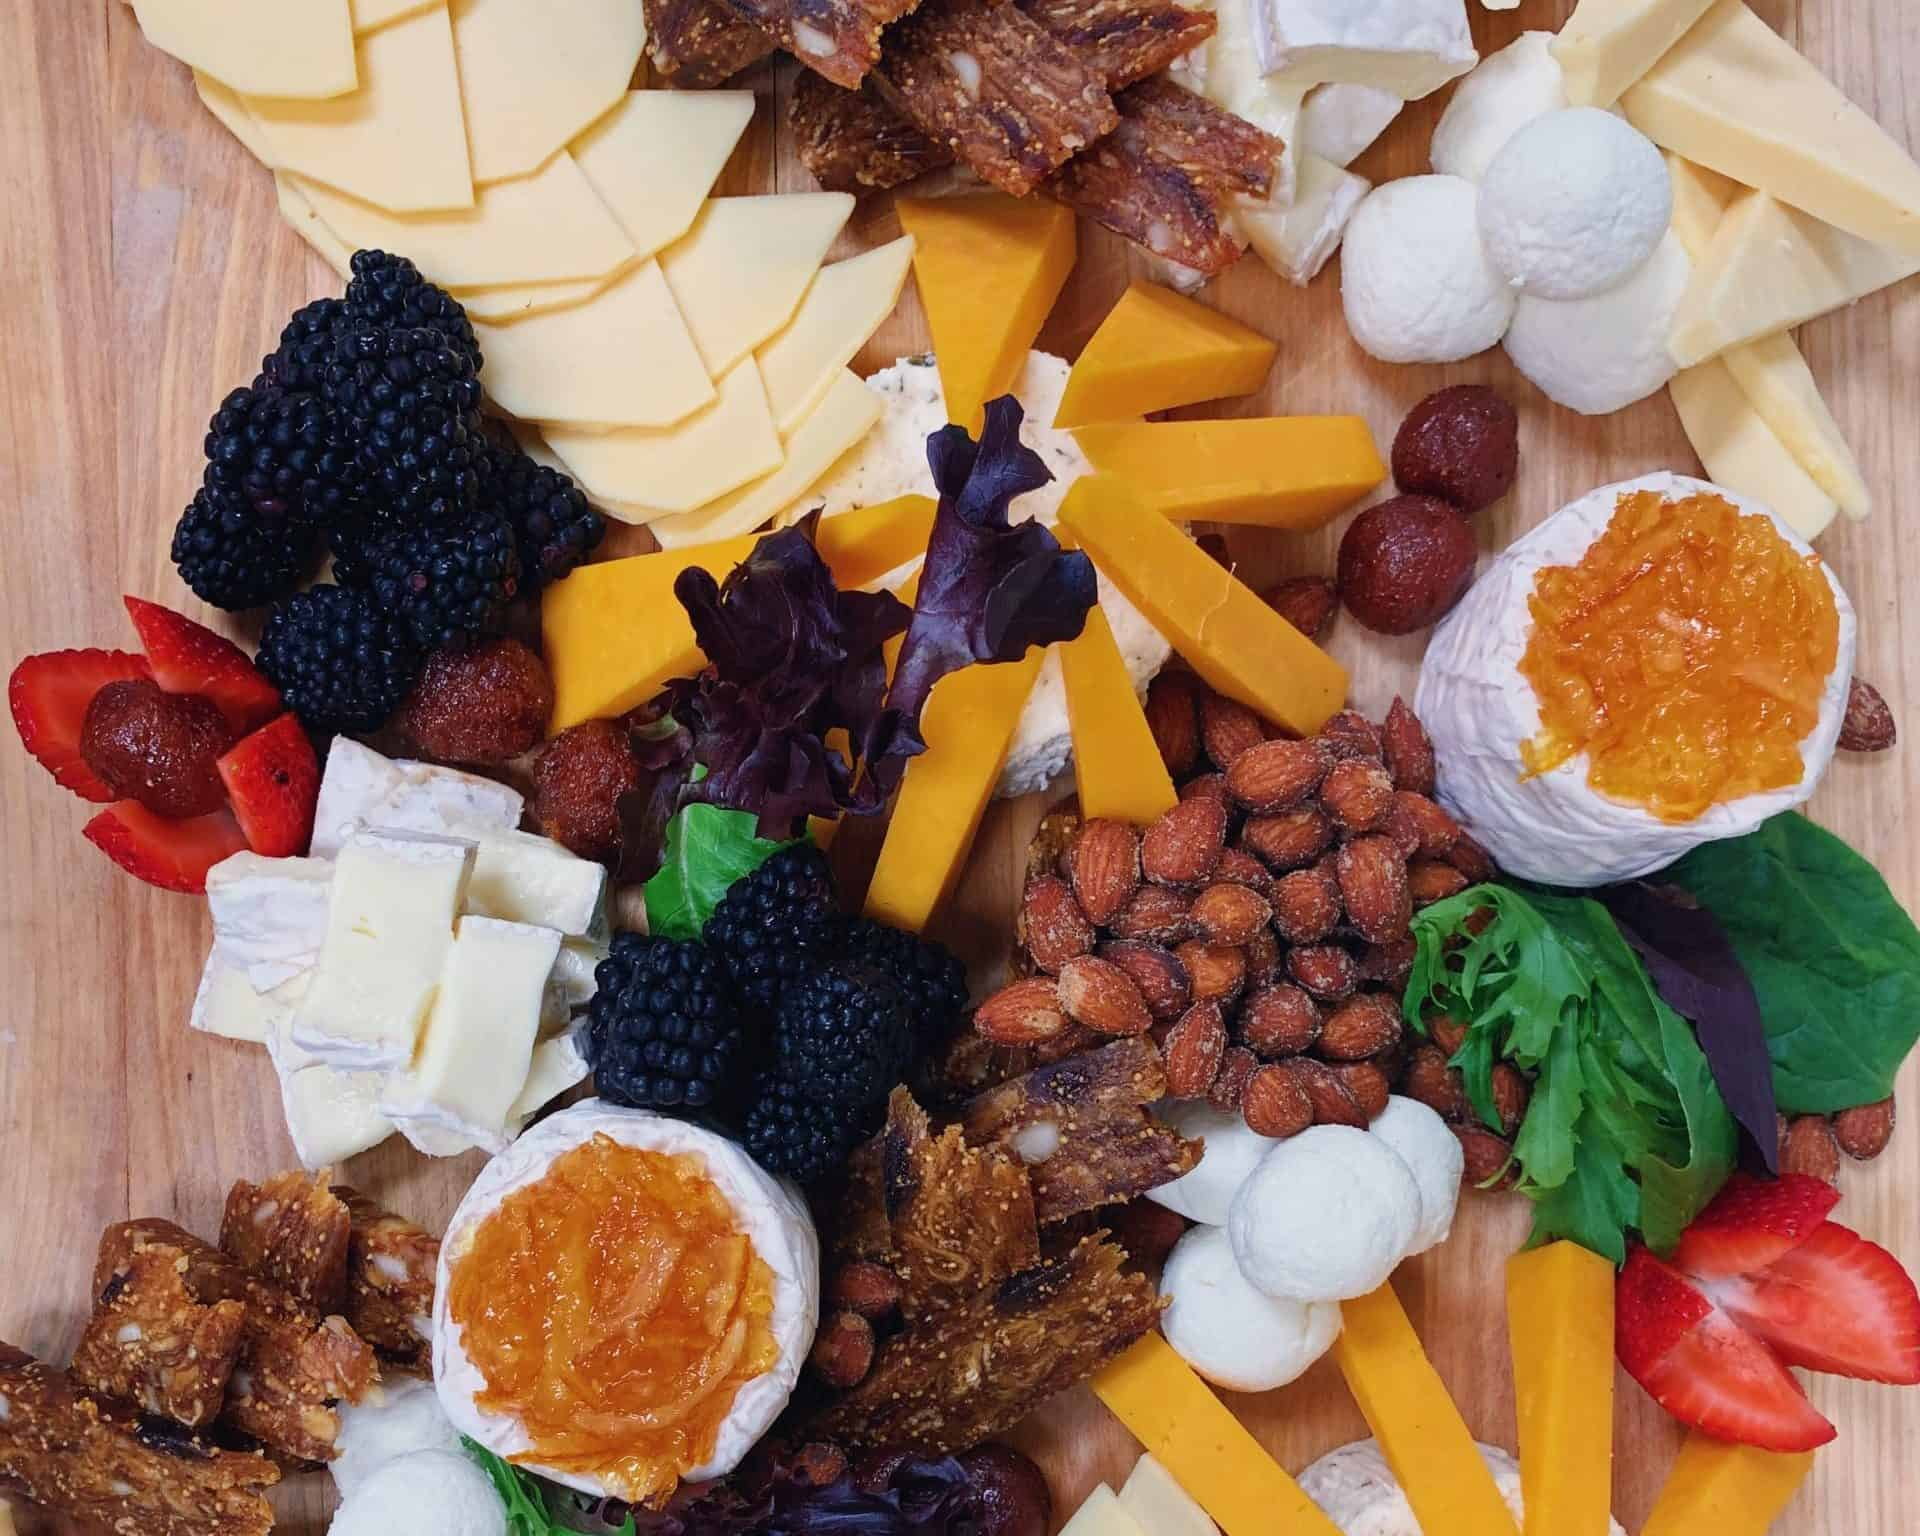 Make your own snack pack - platter of cheese, fruit, meat and nuts